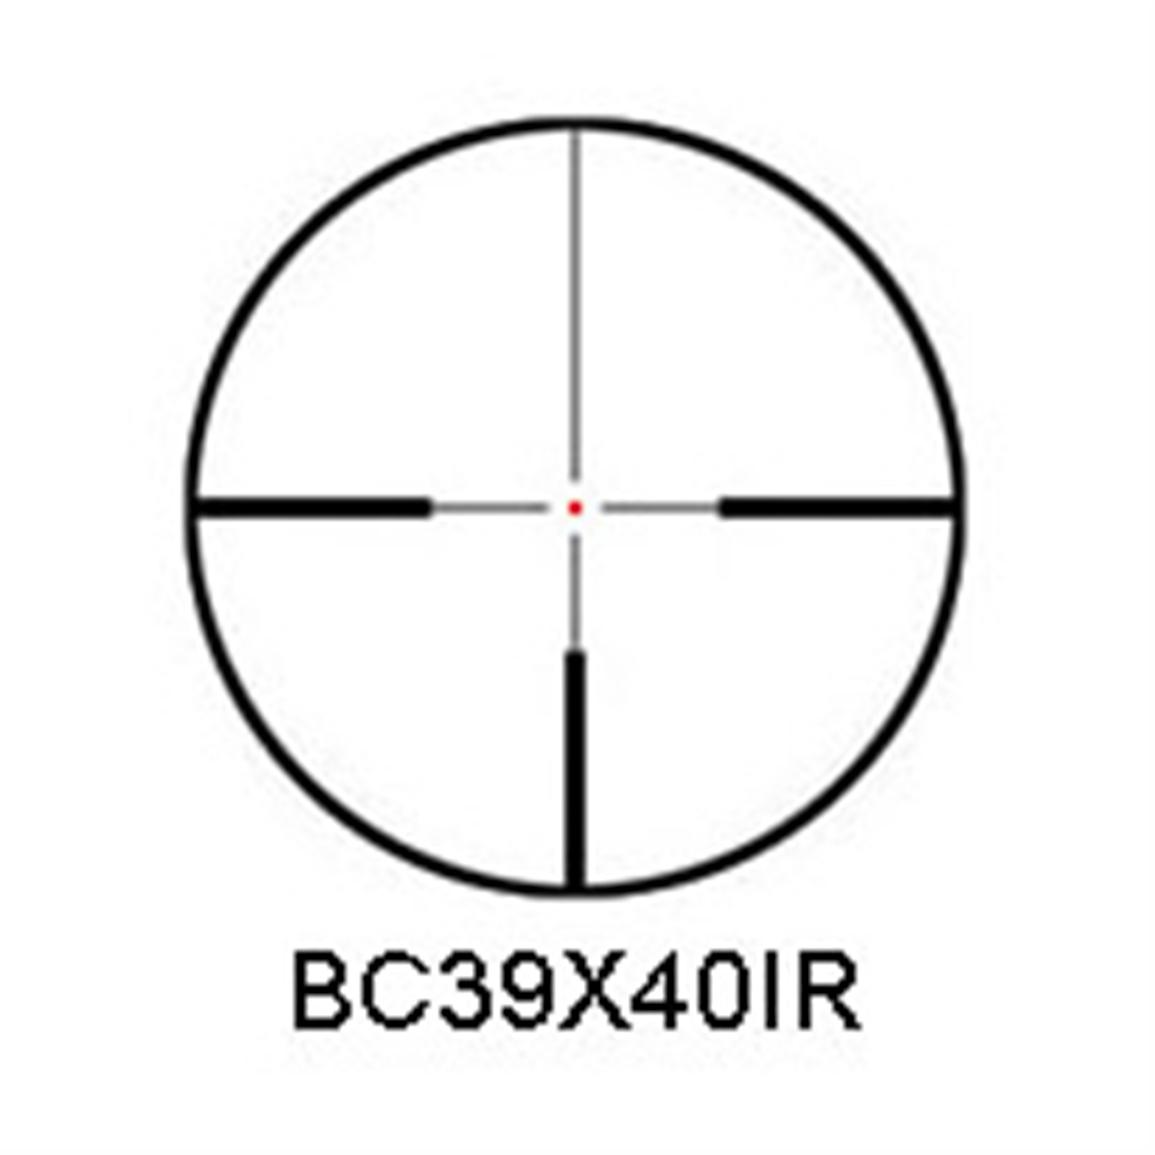 Illuminated etched glass reticle with 1MOA center dot for a bright shot